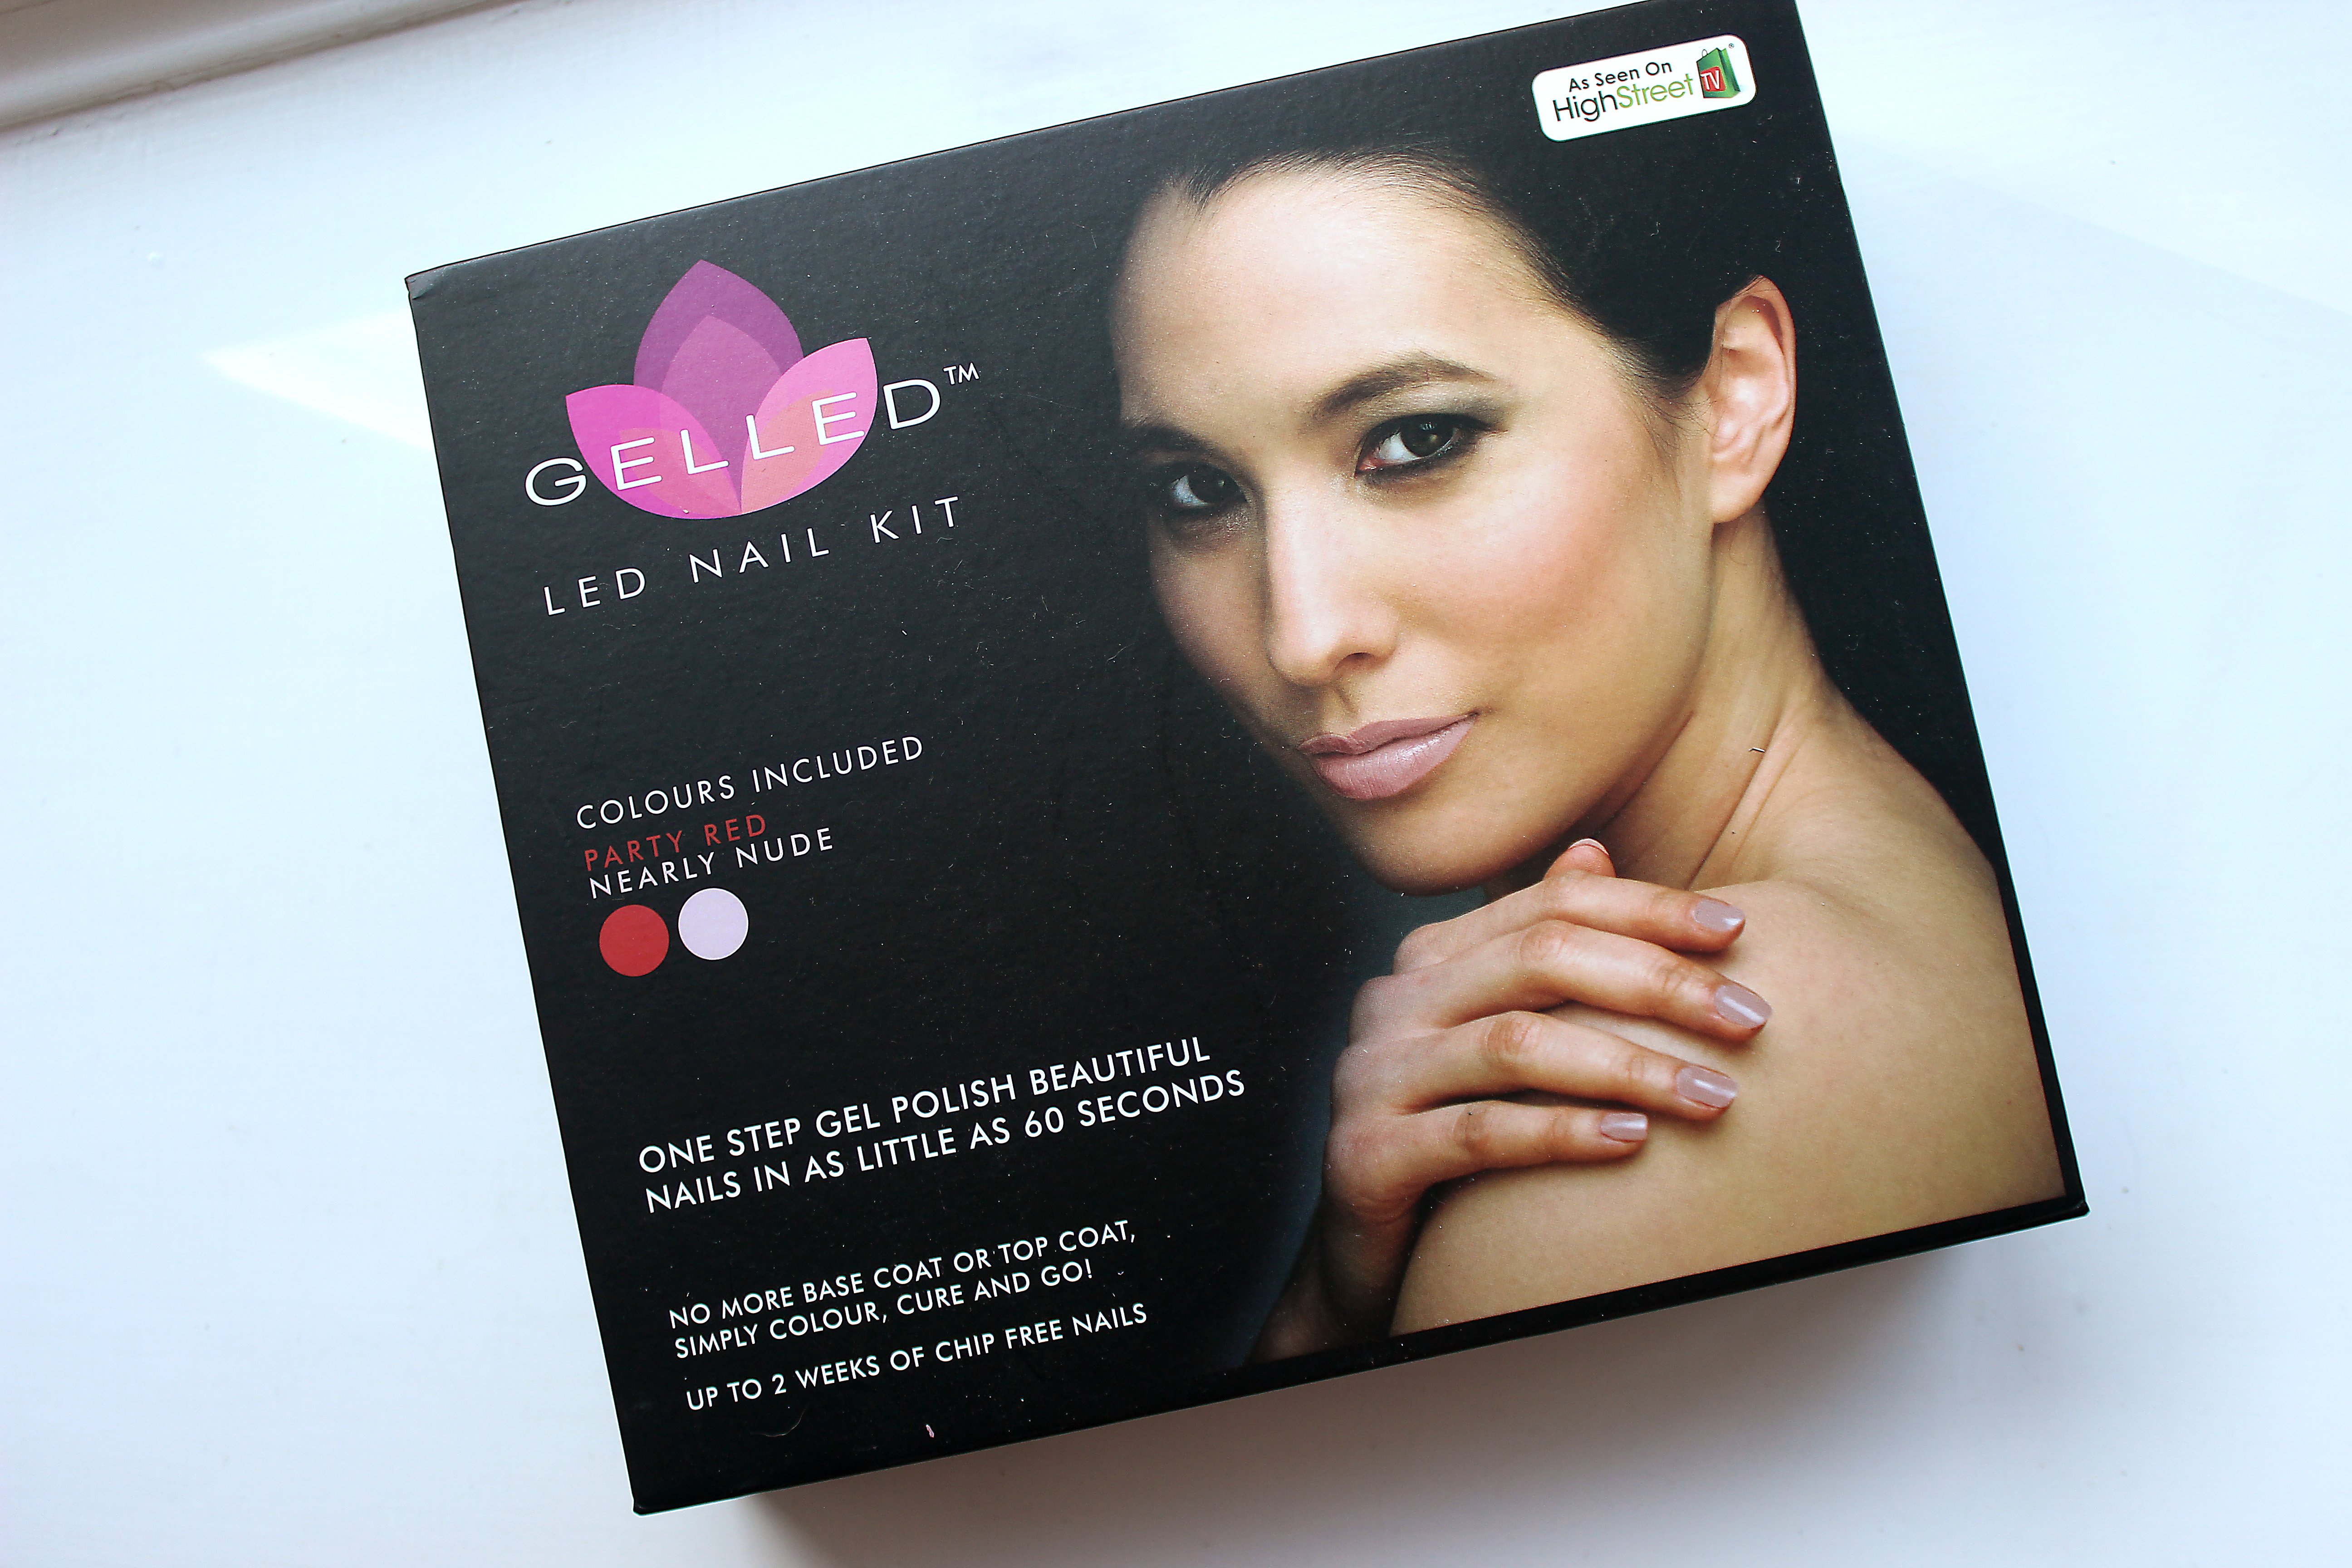 Gel Nails at Home in Just 60 Seconds | Gelled LED Nail Kit